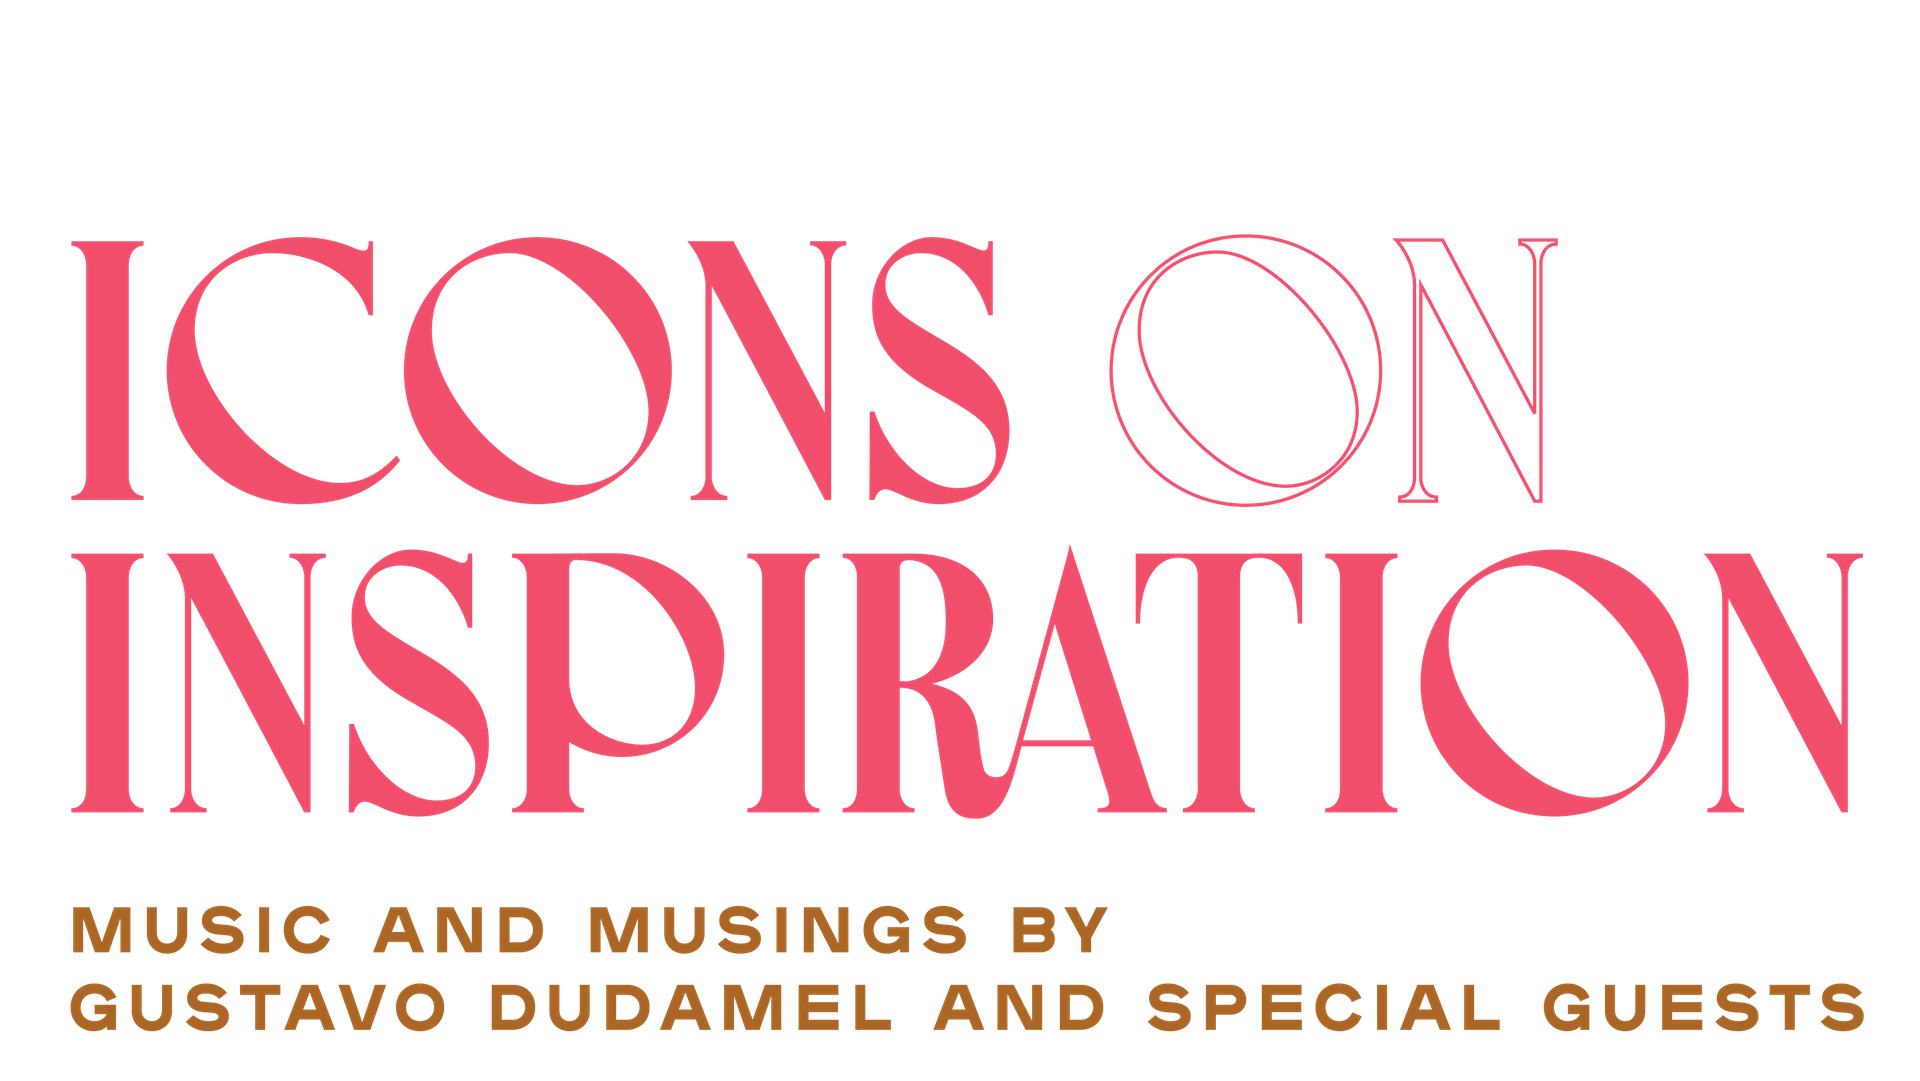 Icons on Inspiration: premiering here on Feb 6, 2021 at 6PM PT